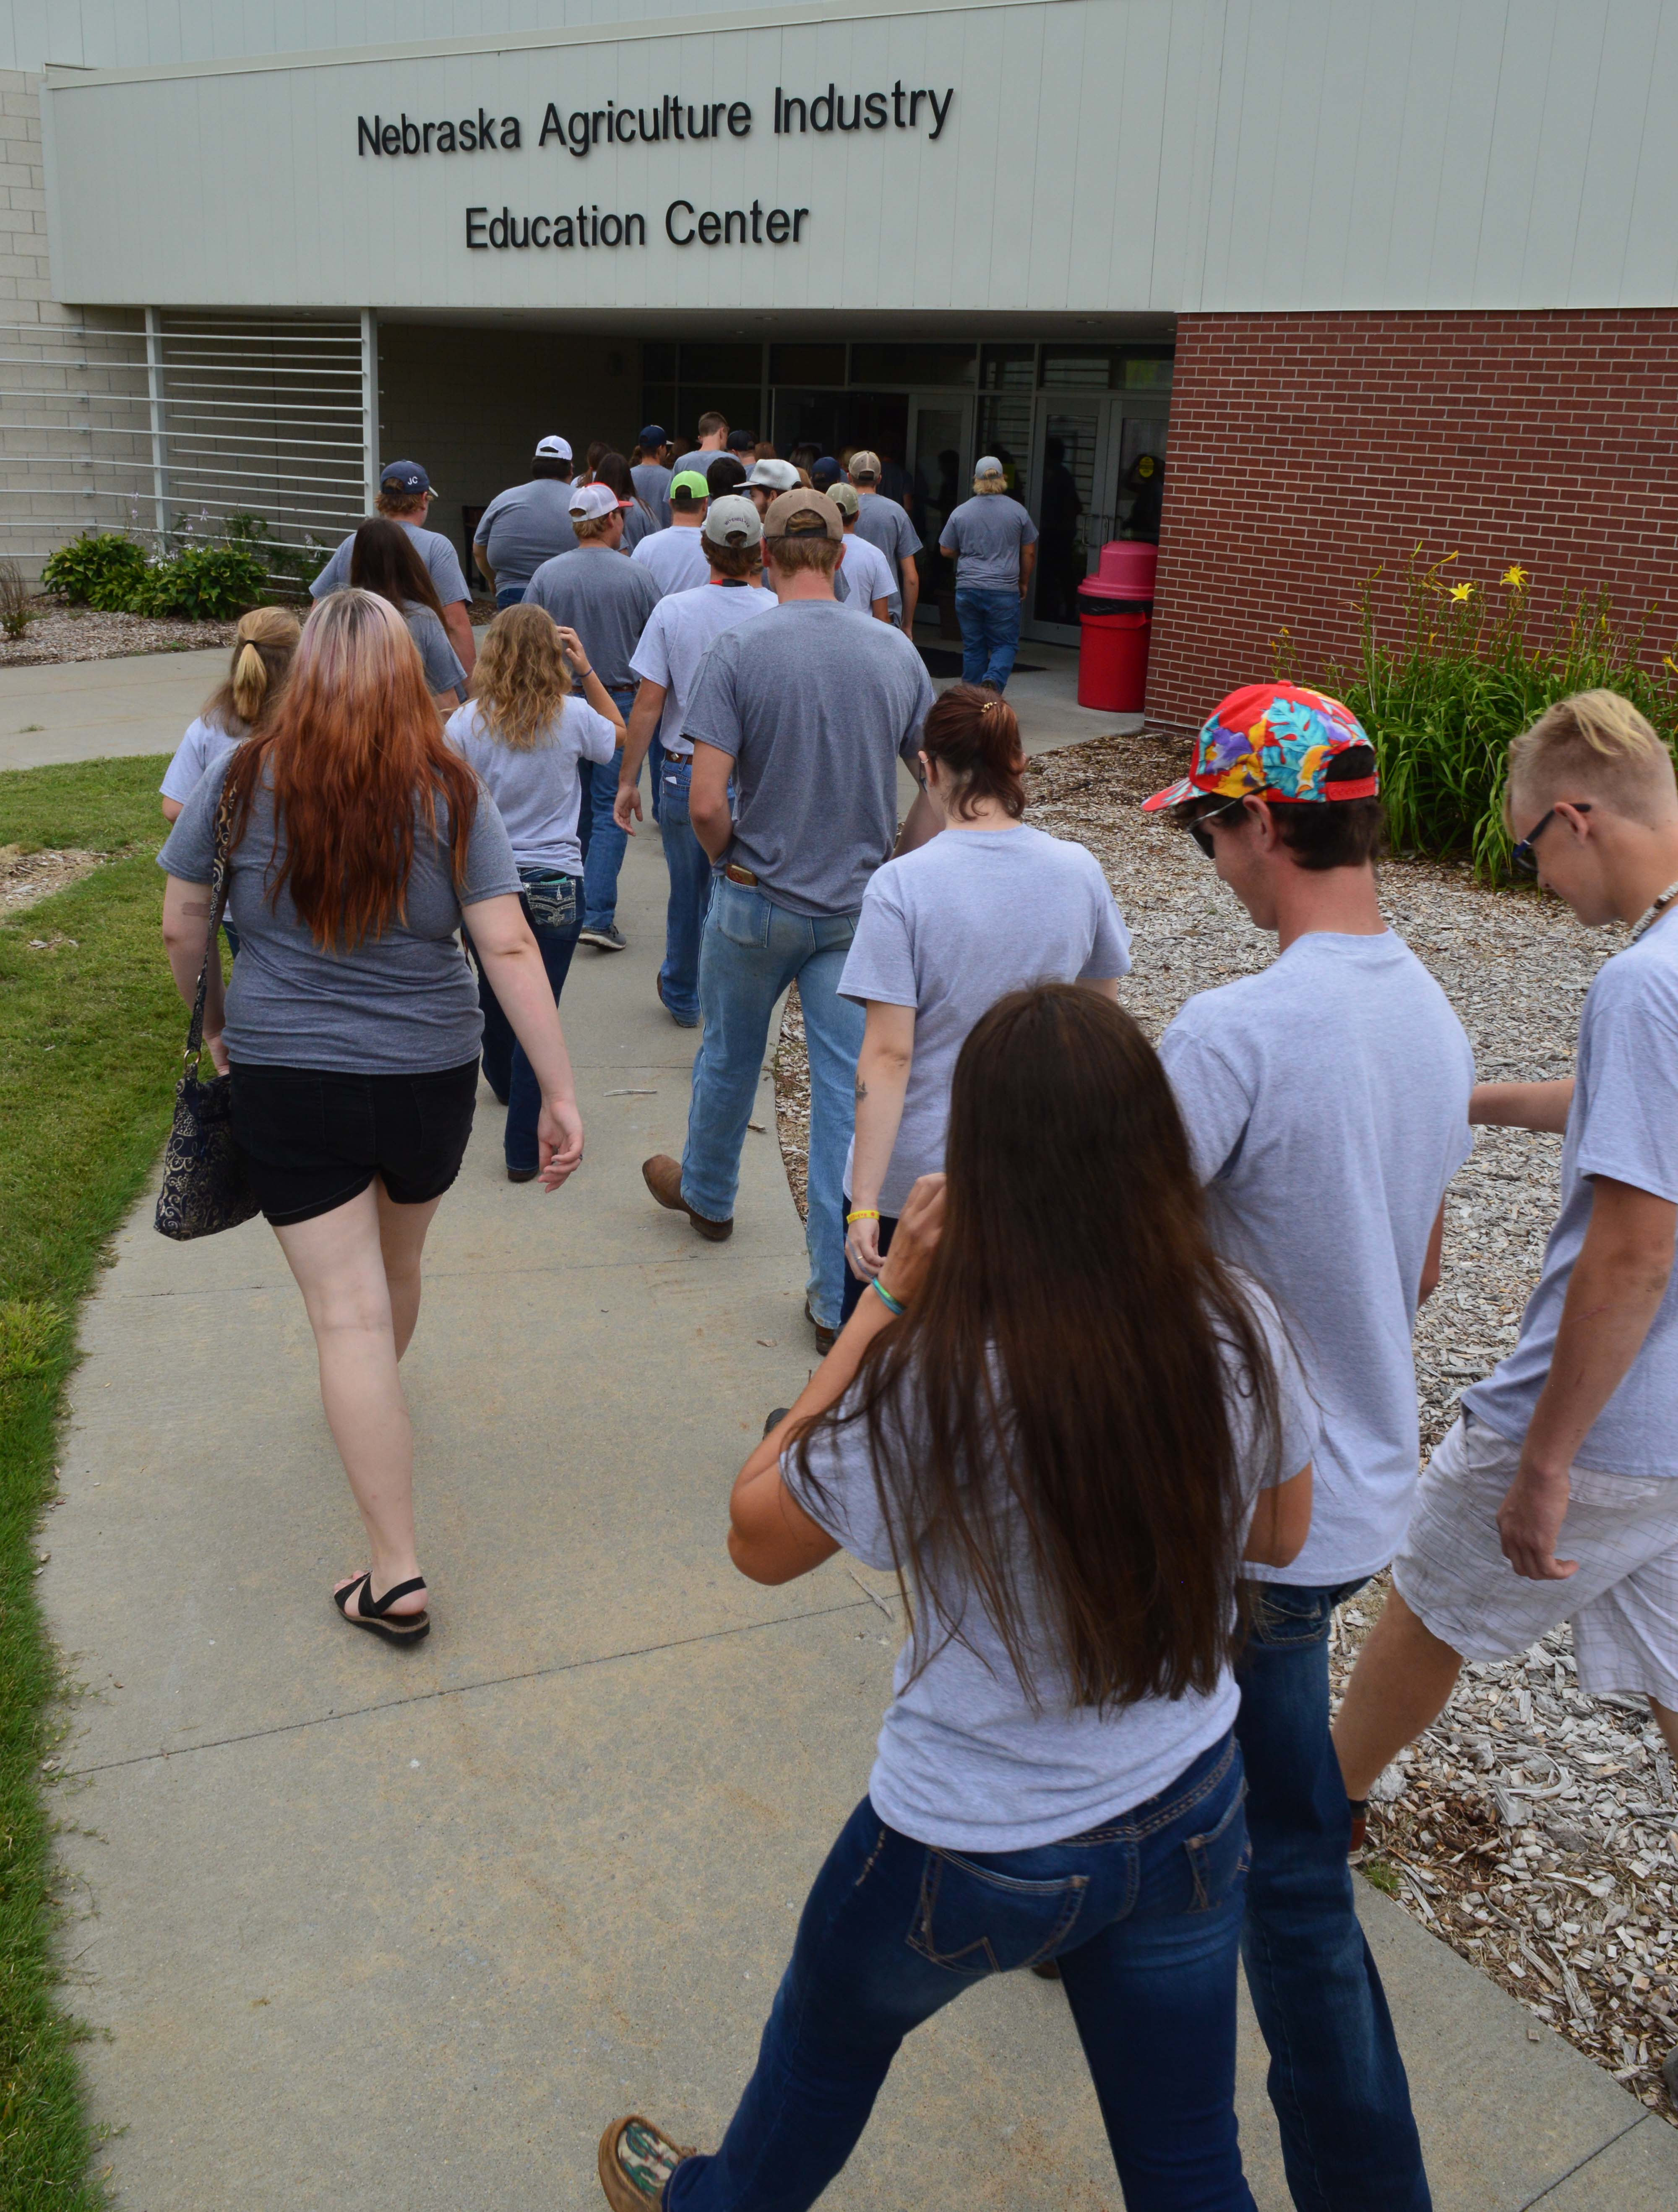 NCTA Aggies put their best foot forward on the way to New Student Orientation. Classes began Monday at the Curtis campus. (Crawford/NCTA)